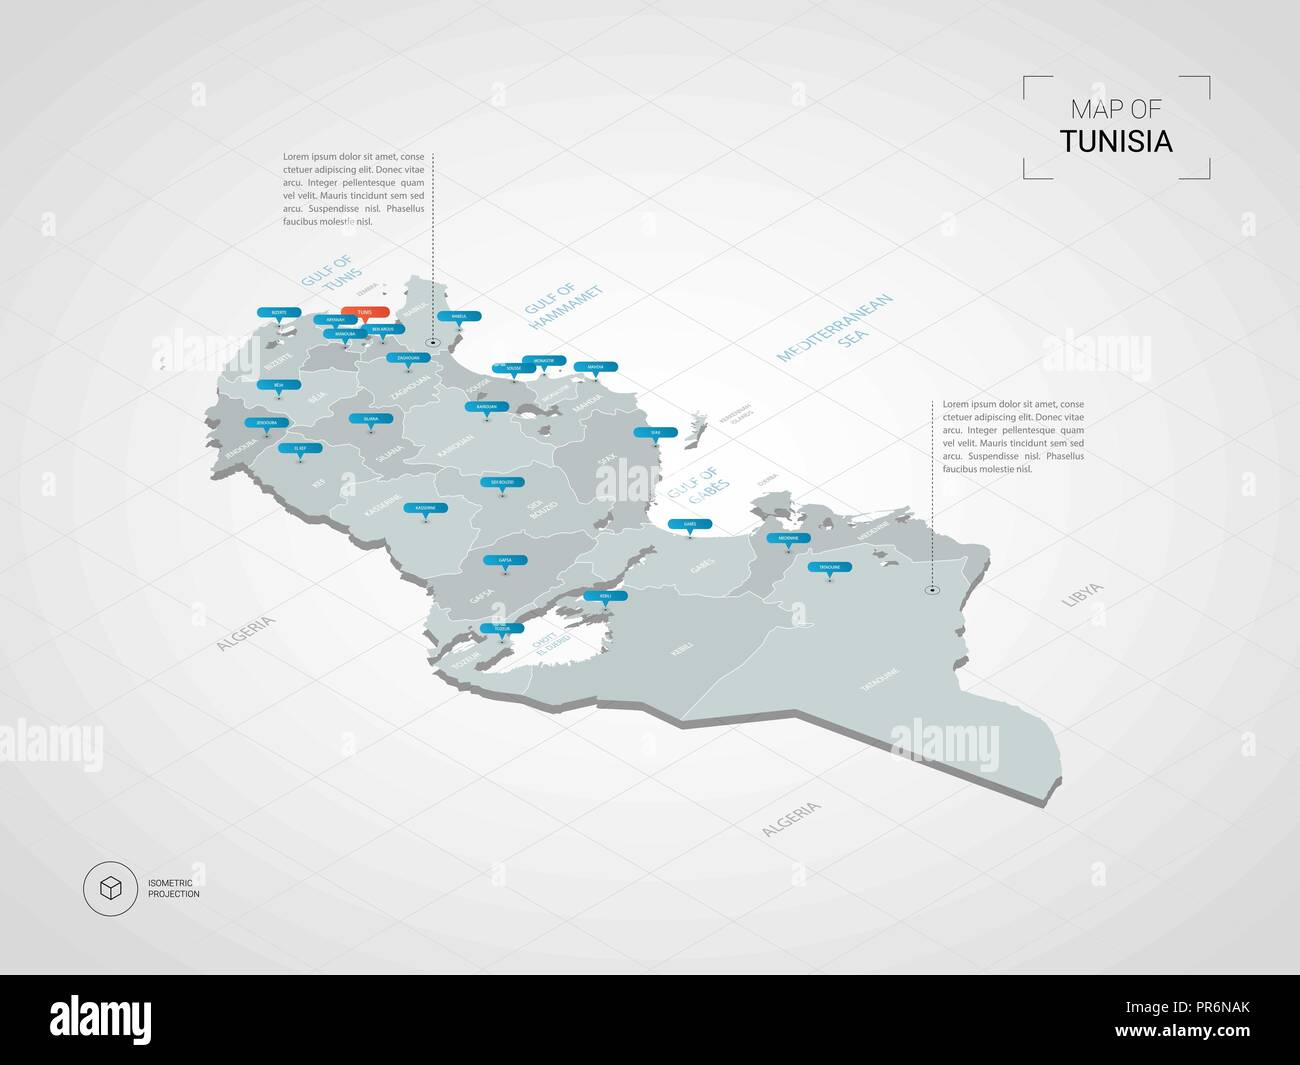 Isometric 3D Tunisia map. Stylized vector map illustration with ...